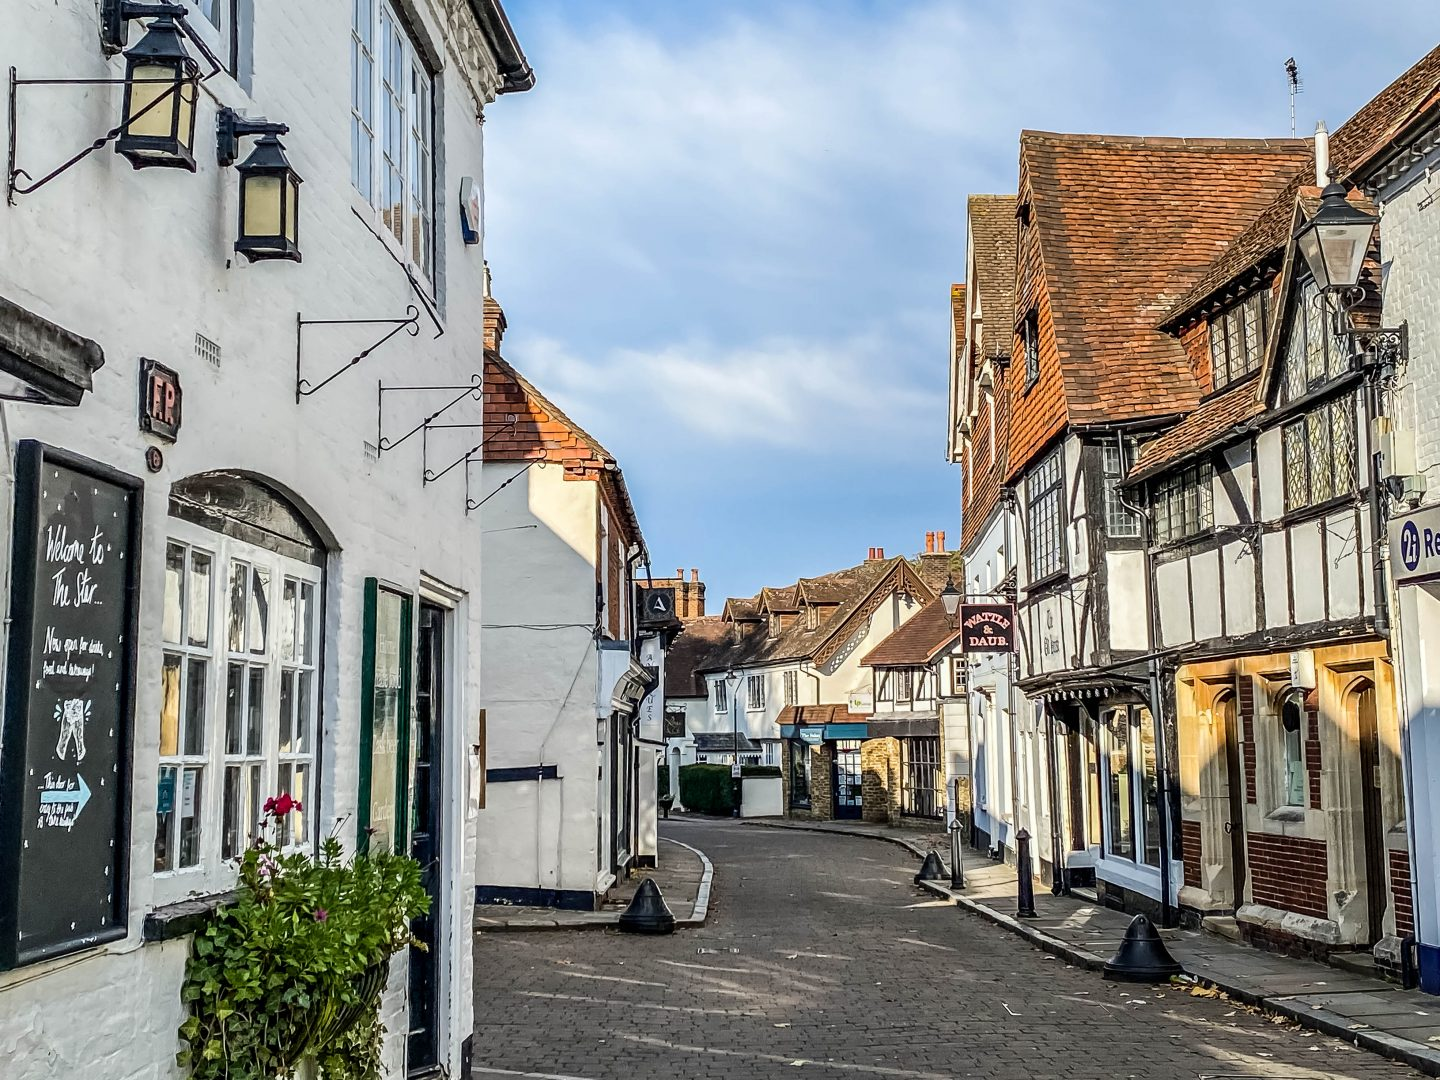 Walk in the quaint village of Godalming in Surrey